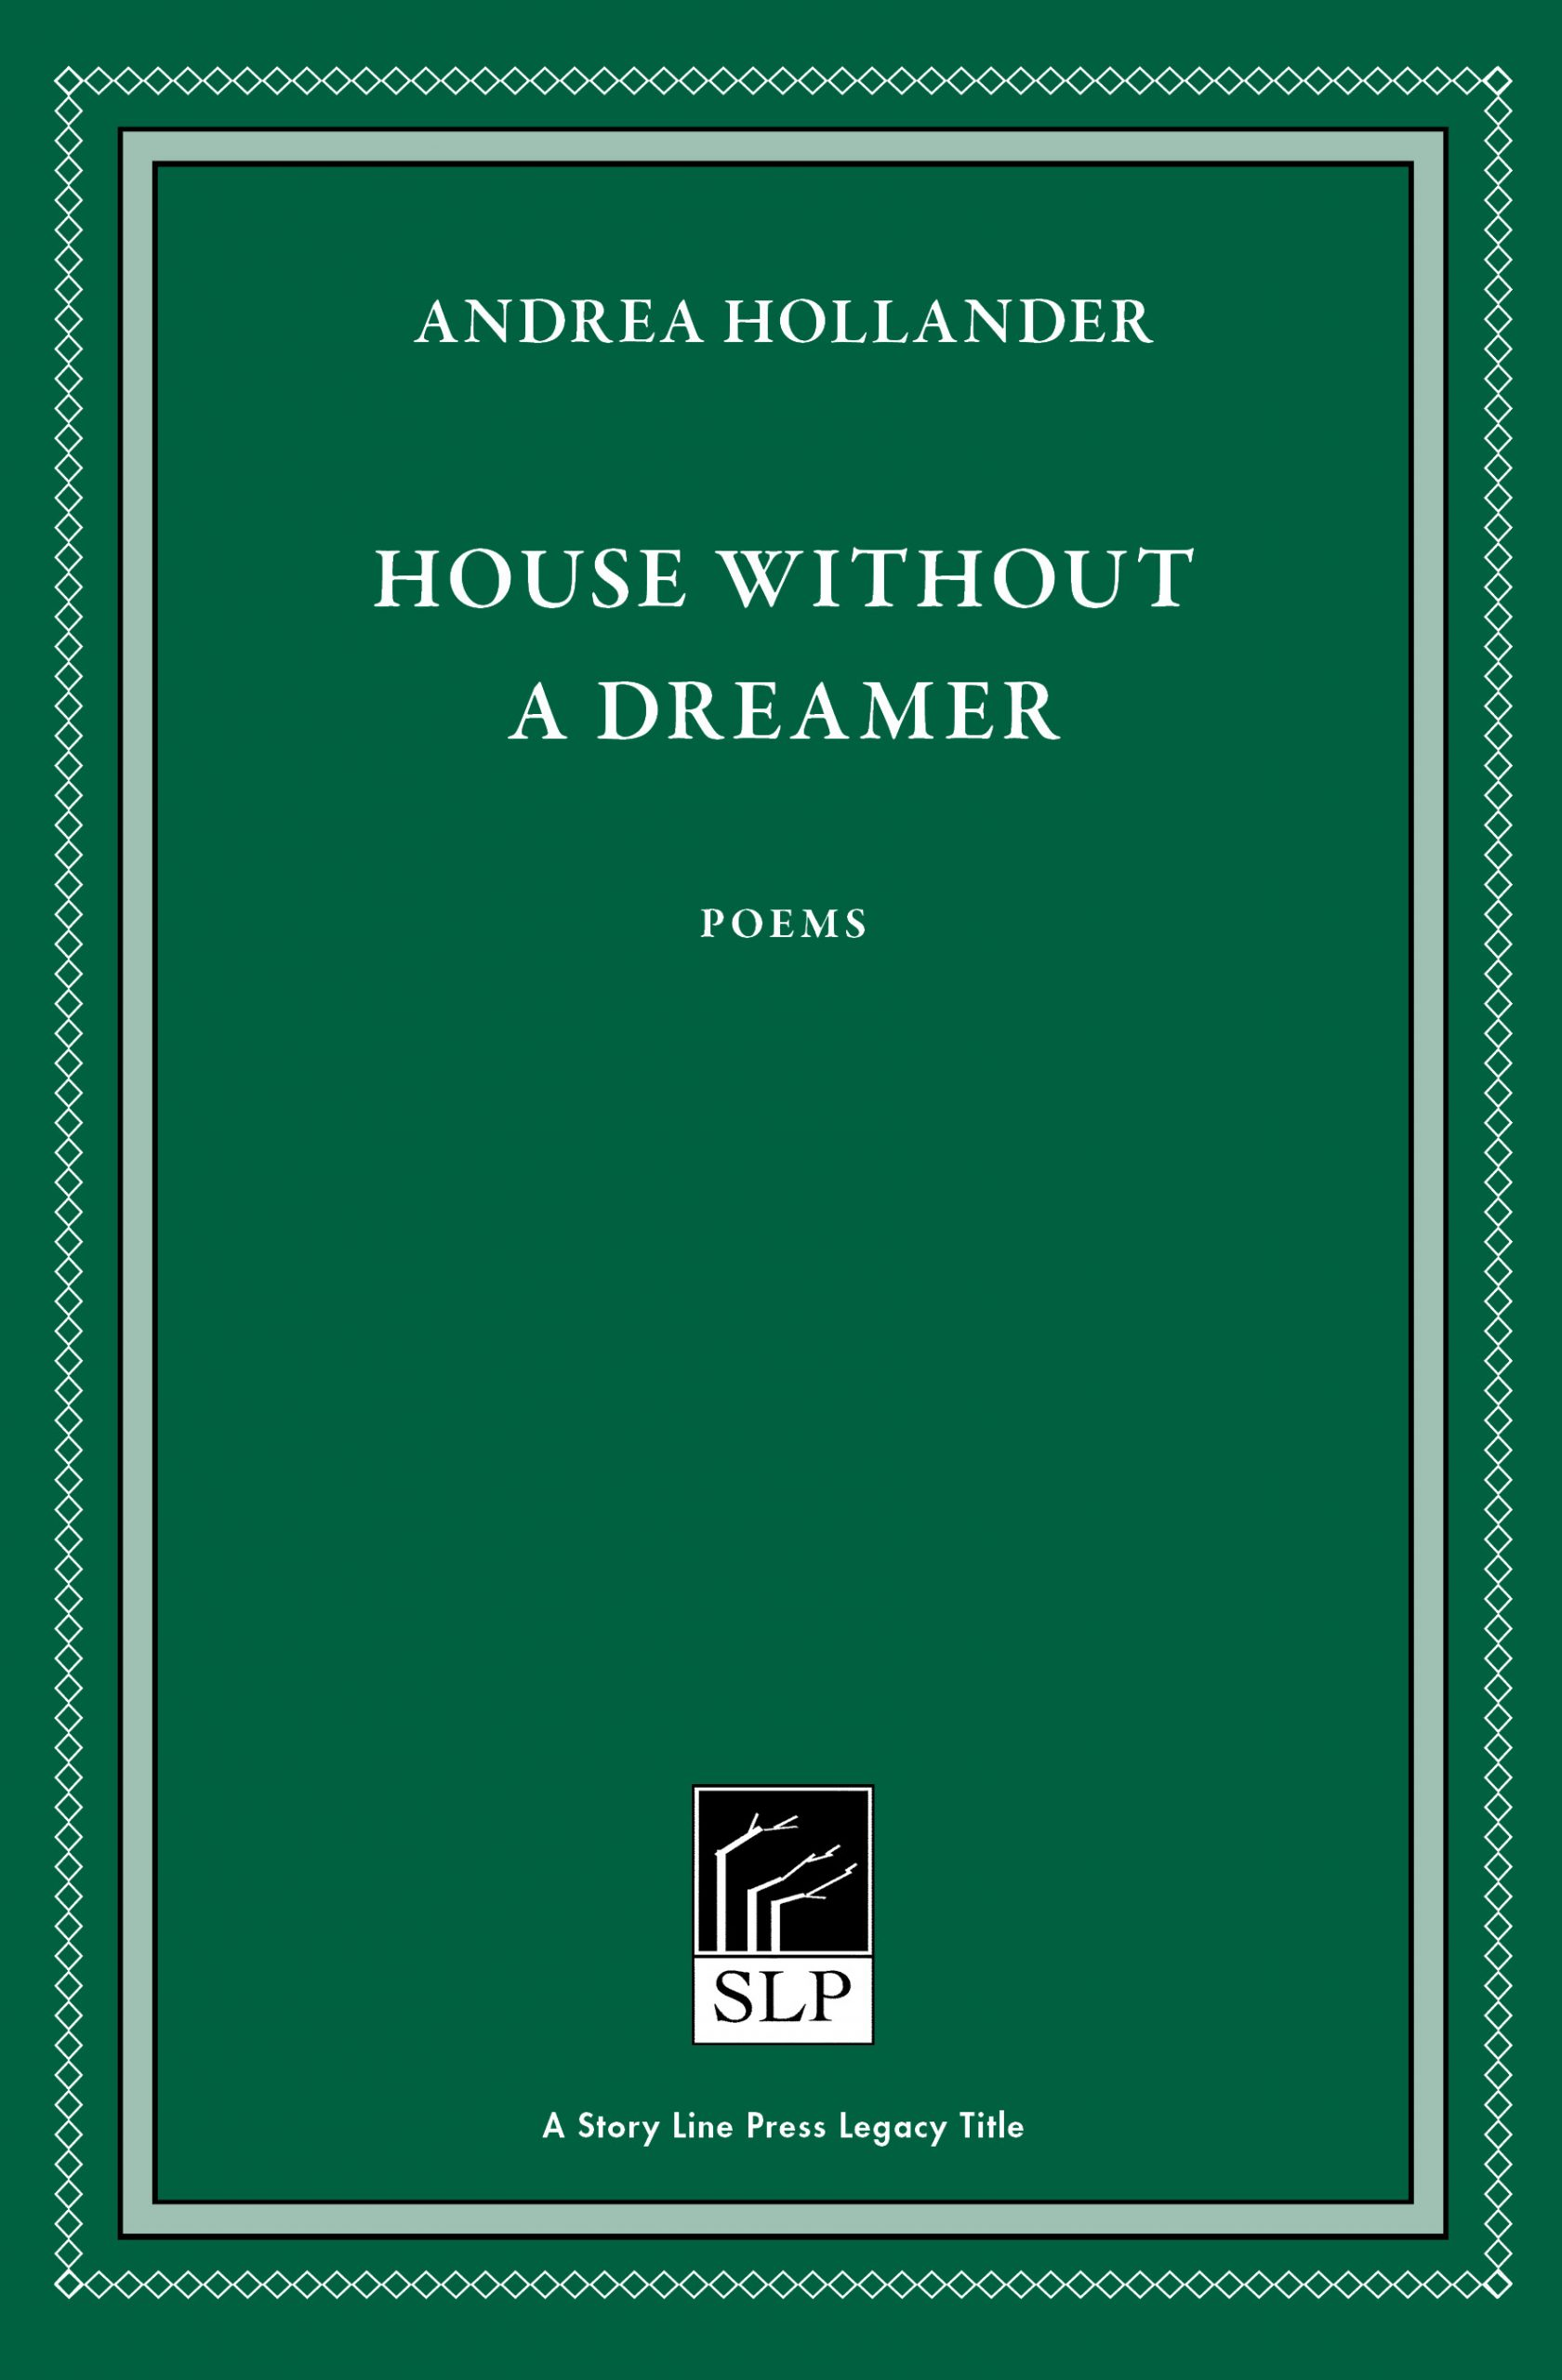 Story Line Press Legacy Title, Andrea Hollander House Without a Dreamer Poems, white text against emerald green background.